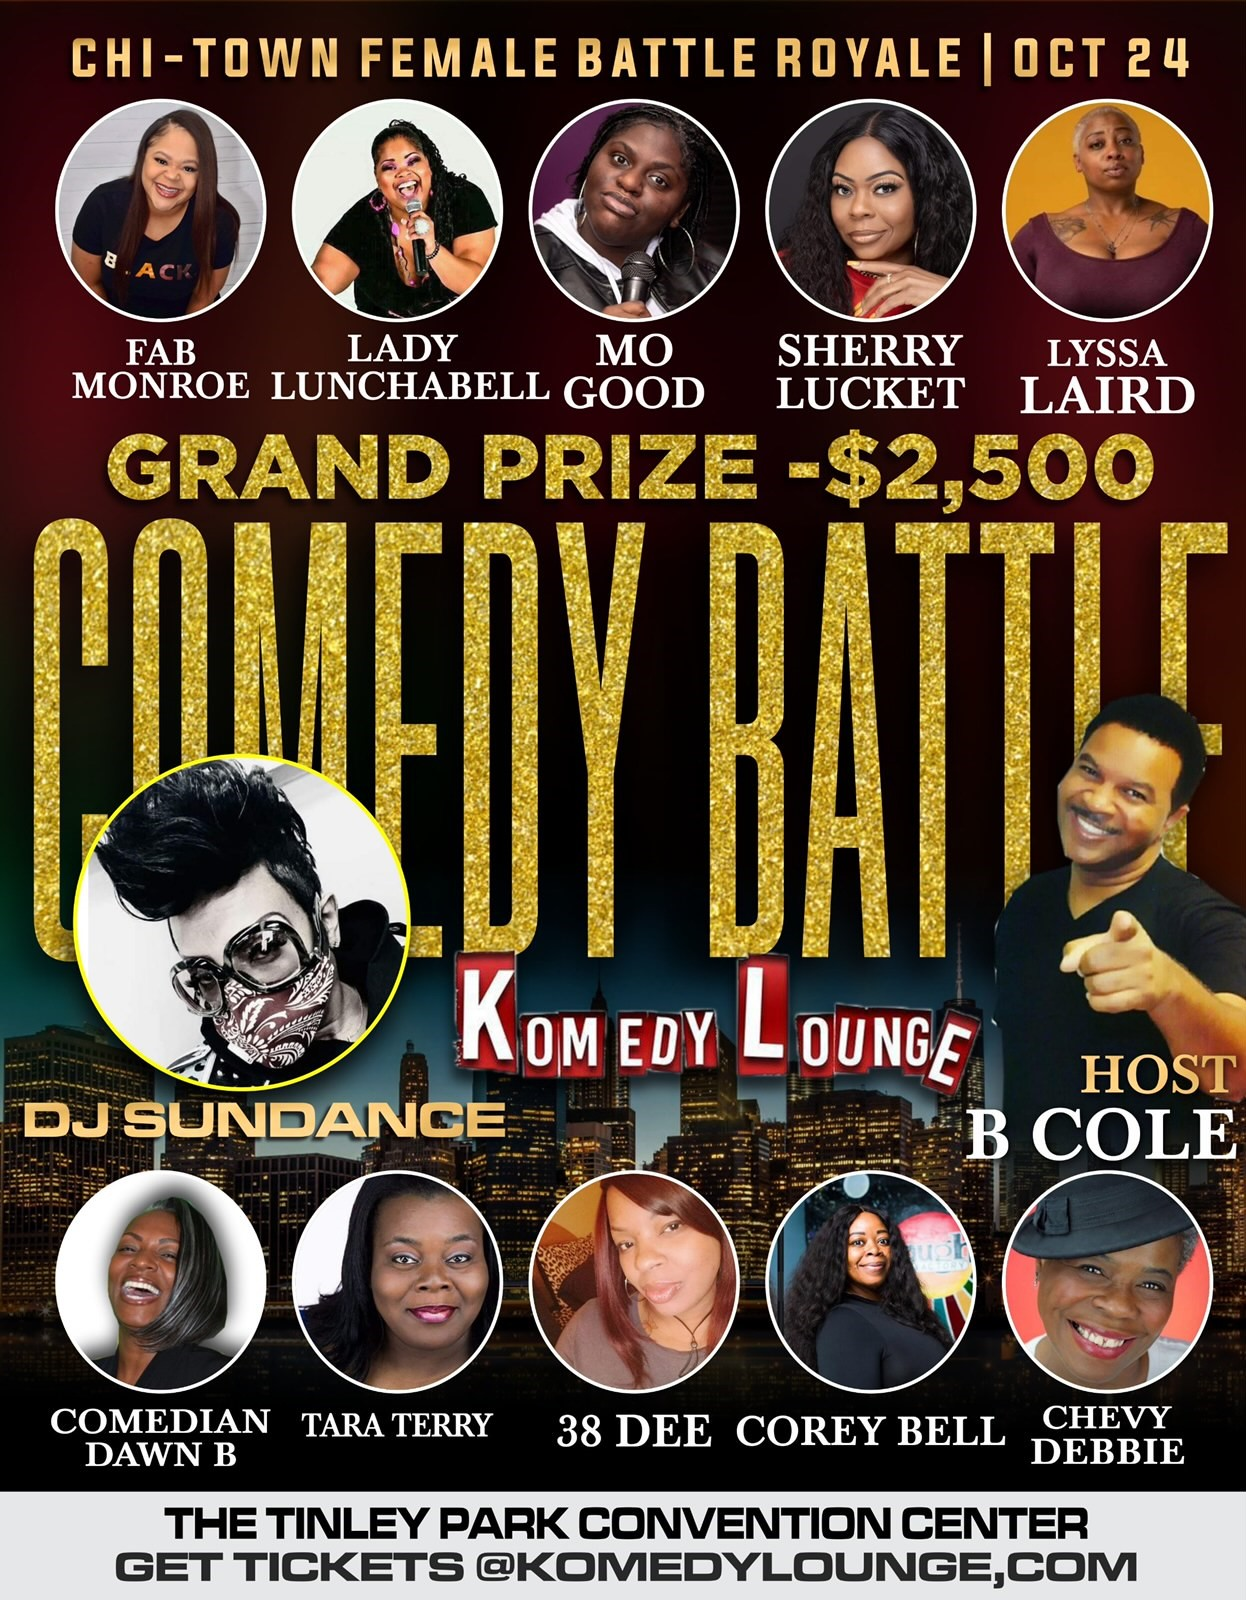 Chi-Town Comedy Battle Women 2 Battles 1 Night: Women start 5pm, Men start 8pm on Oct 24, 17:00@Tinley Park Convention Center - Buy tickets and Get information on komedylounge.com